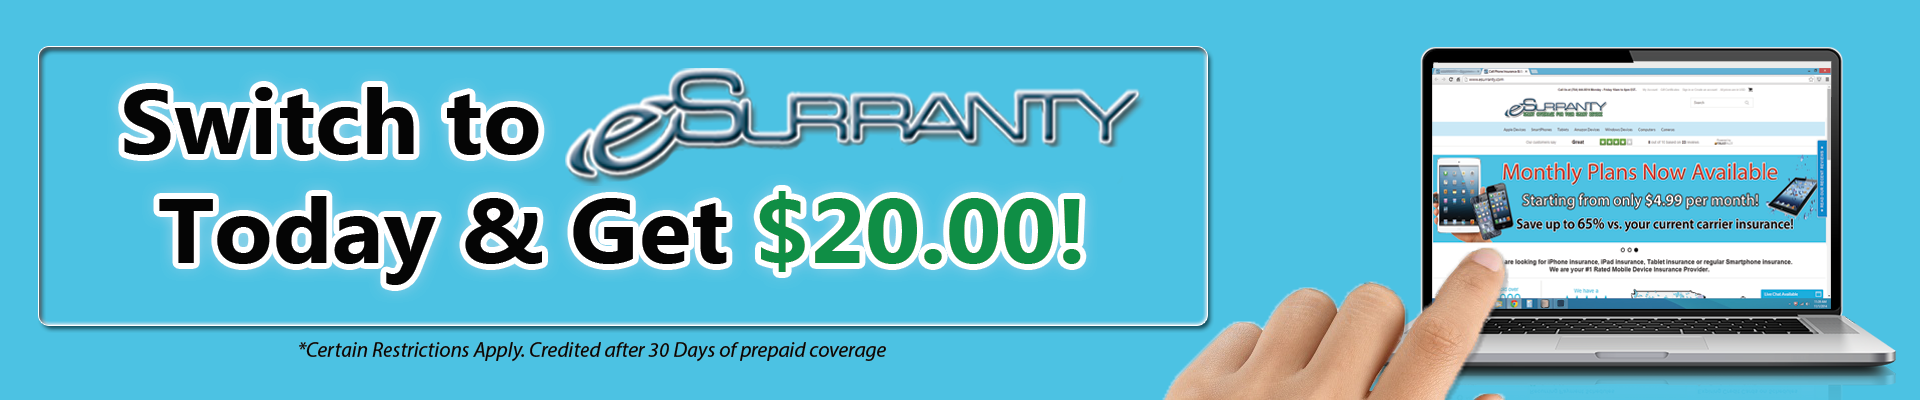 Switch To eSURRANTY.com and save!